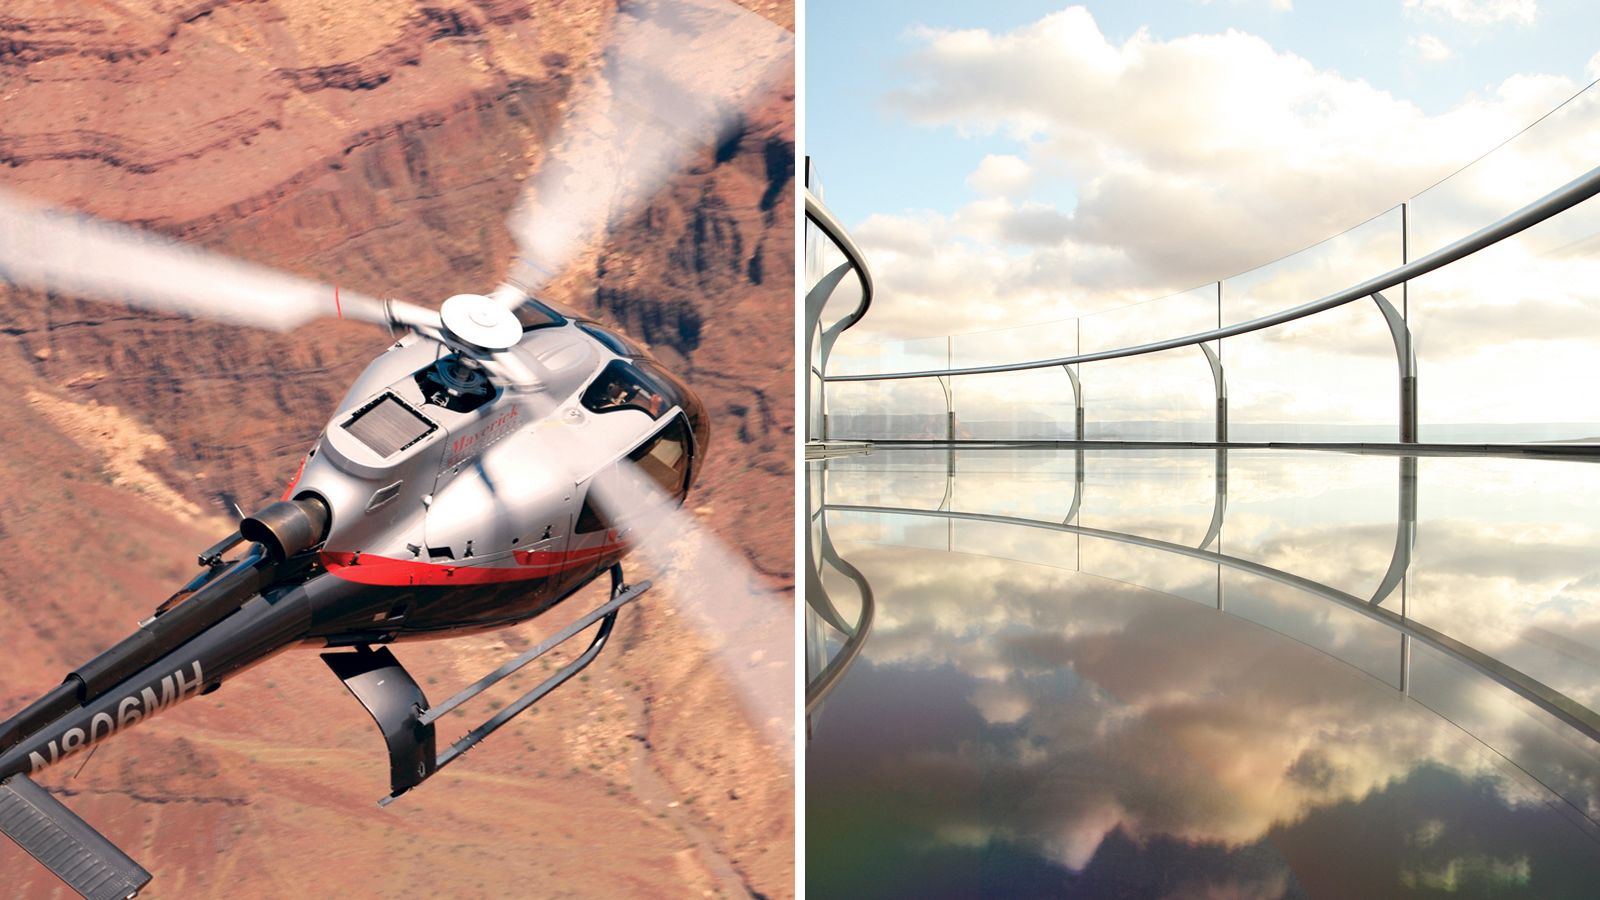 Express Helicopter Excursion & Glass Bottom Skywalk